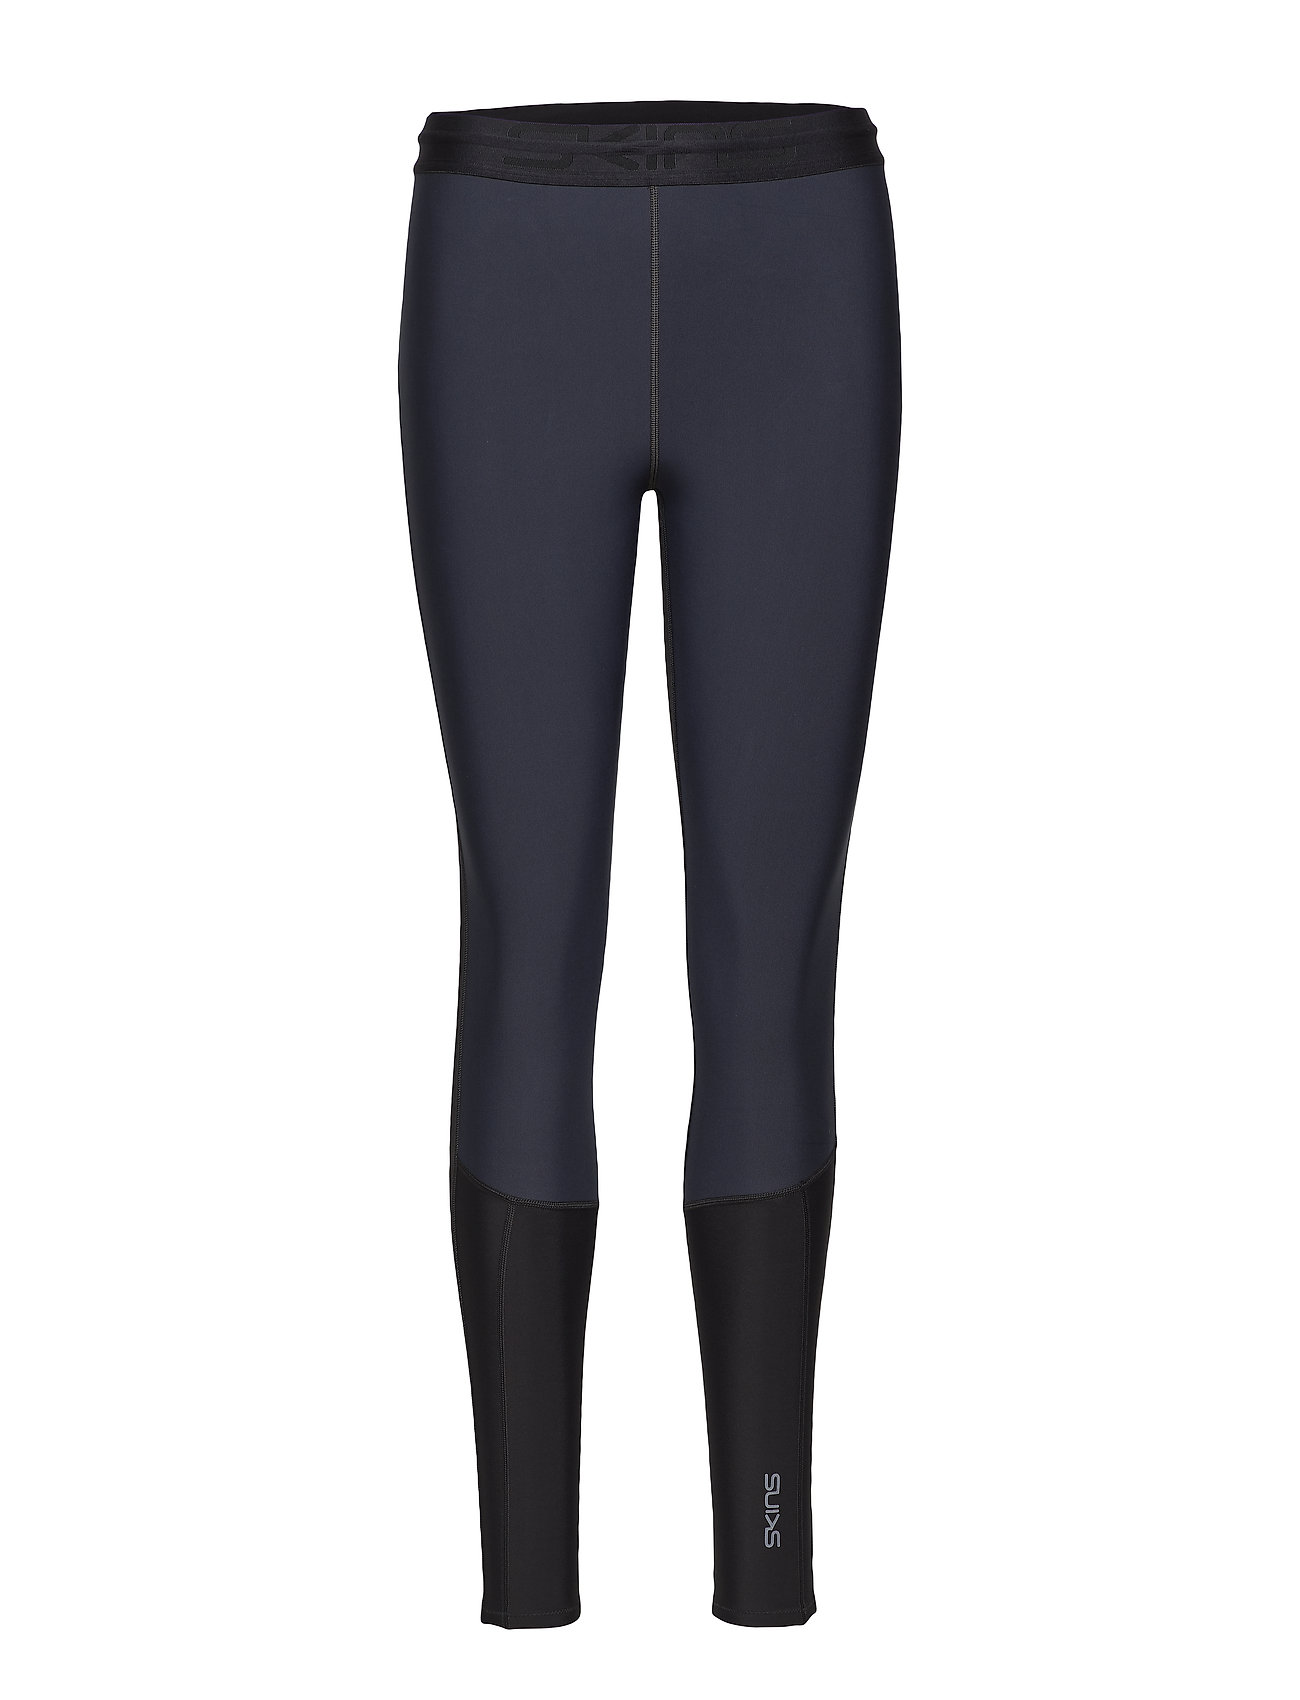 a070b7f542a16 Dnamic Thermal Windproof Womens Long Tights (Black/charcoal) (£72 ...